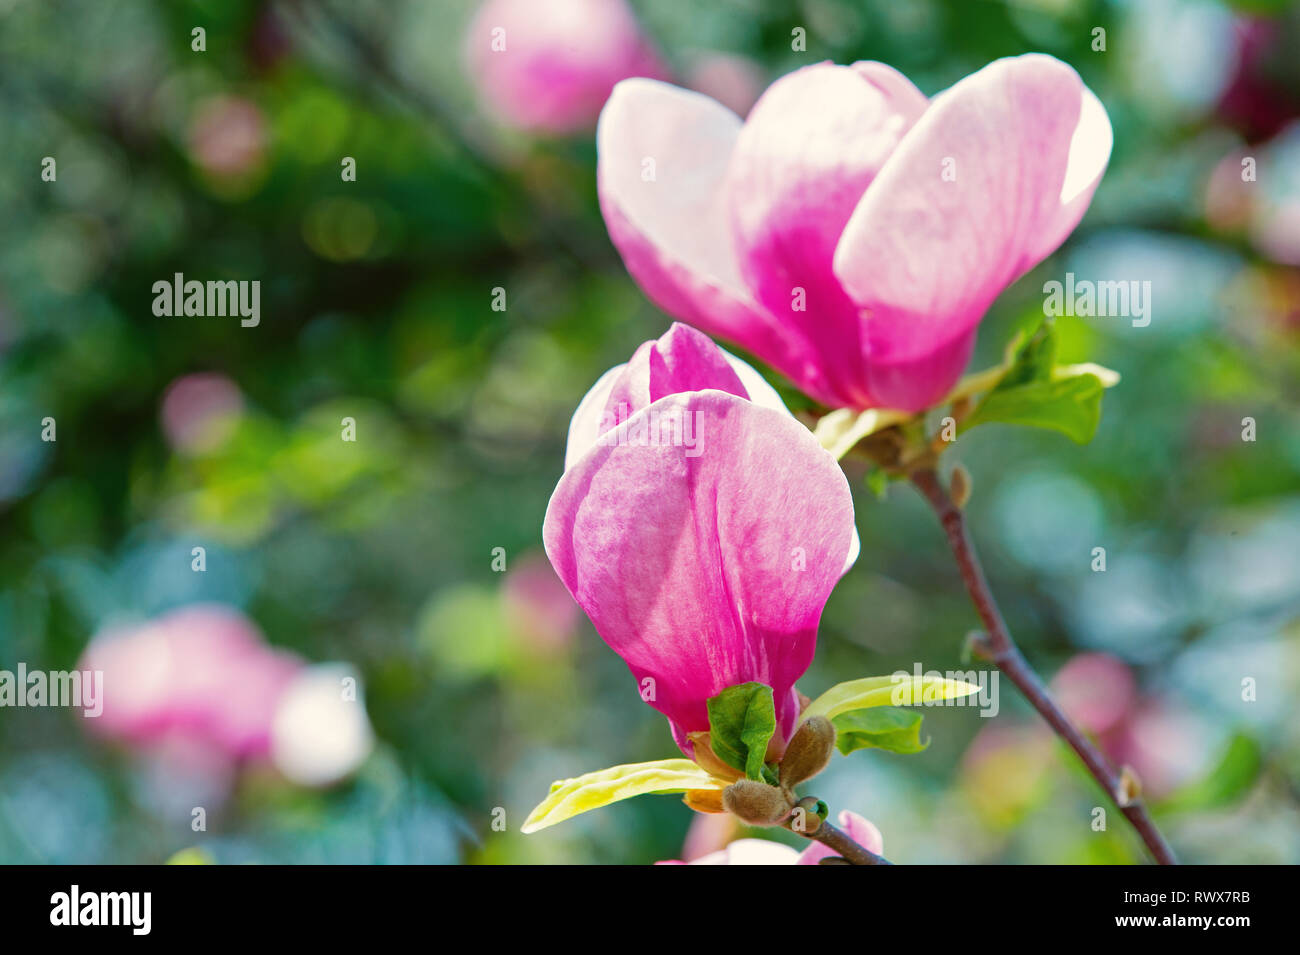 Branch with blooming pink magnolia flower buds on natural background - Stock Image